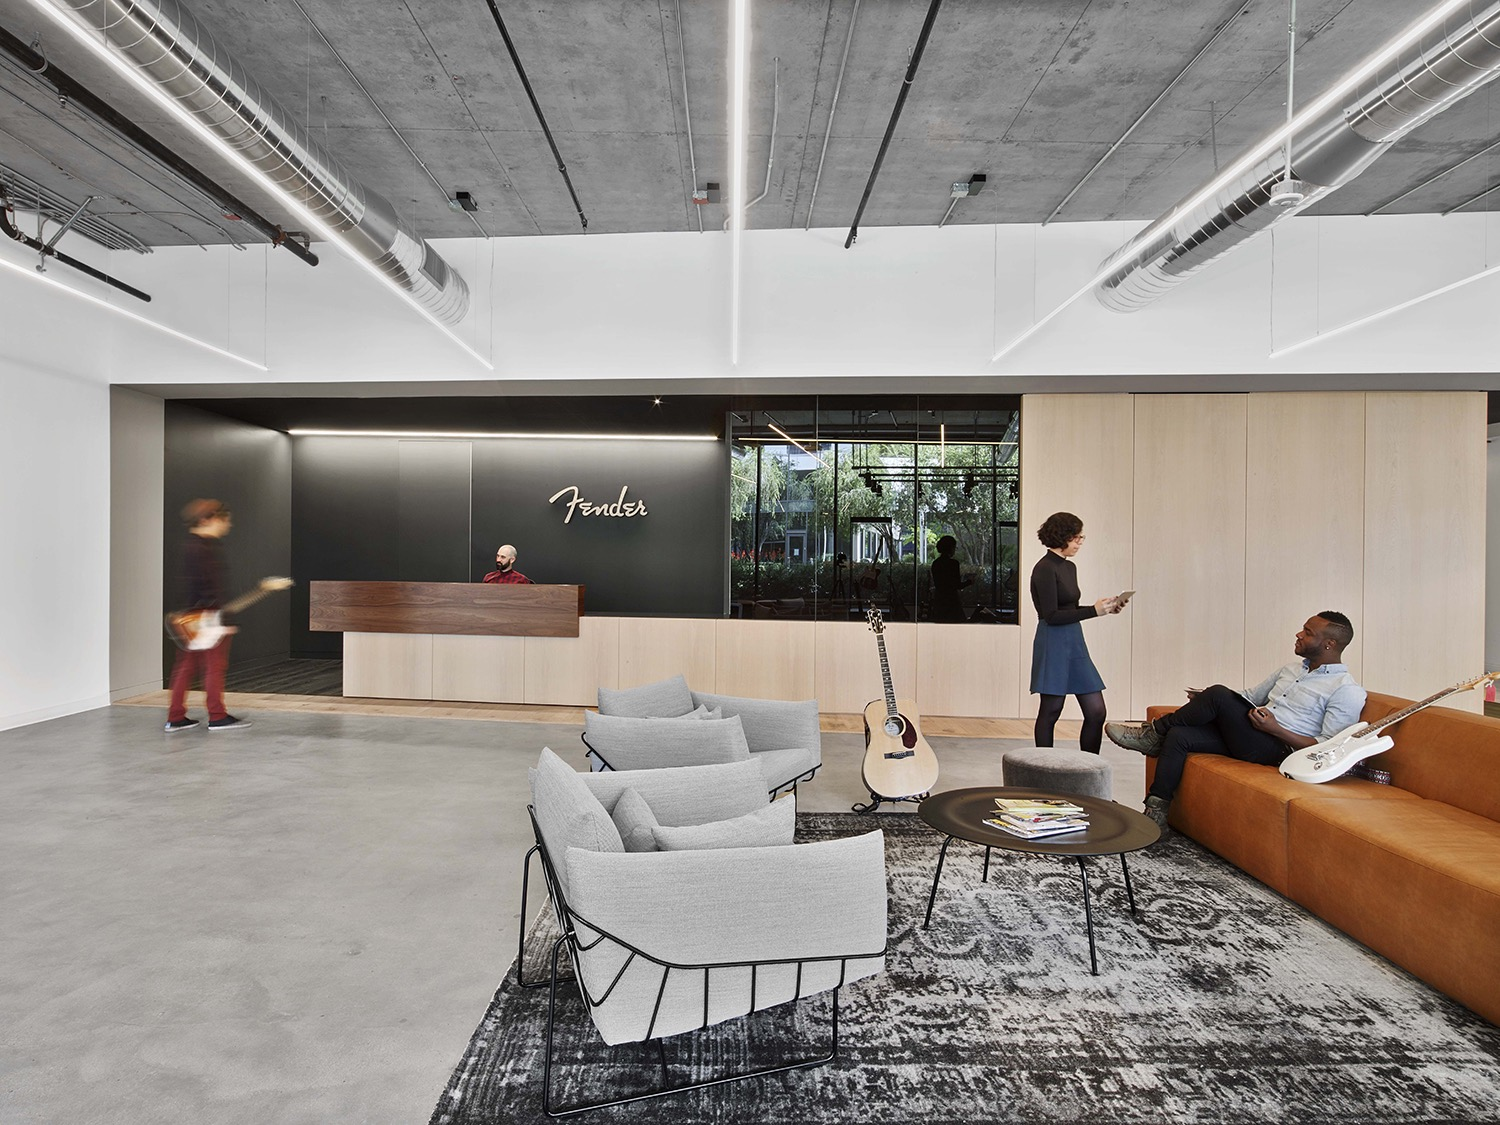 A tour of fender s sleek new los angeles office officelovin 39 for Los angeles interior